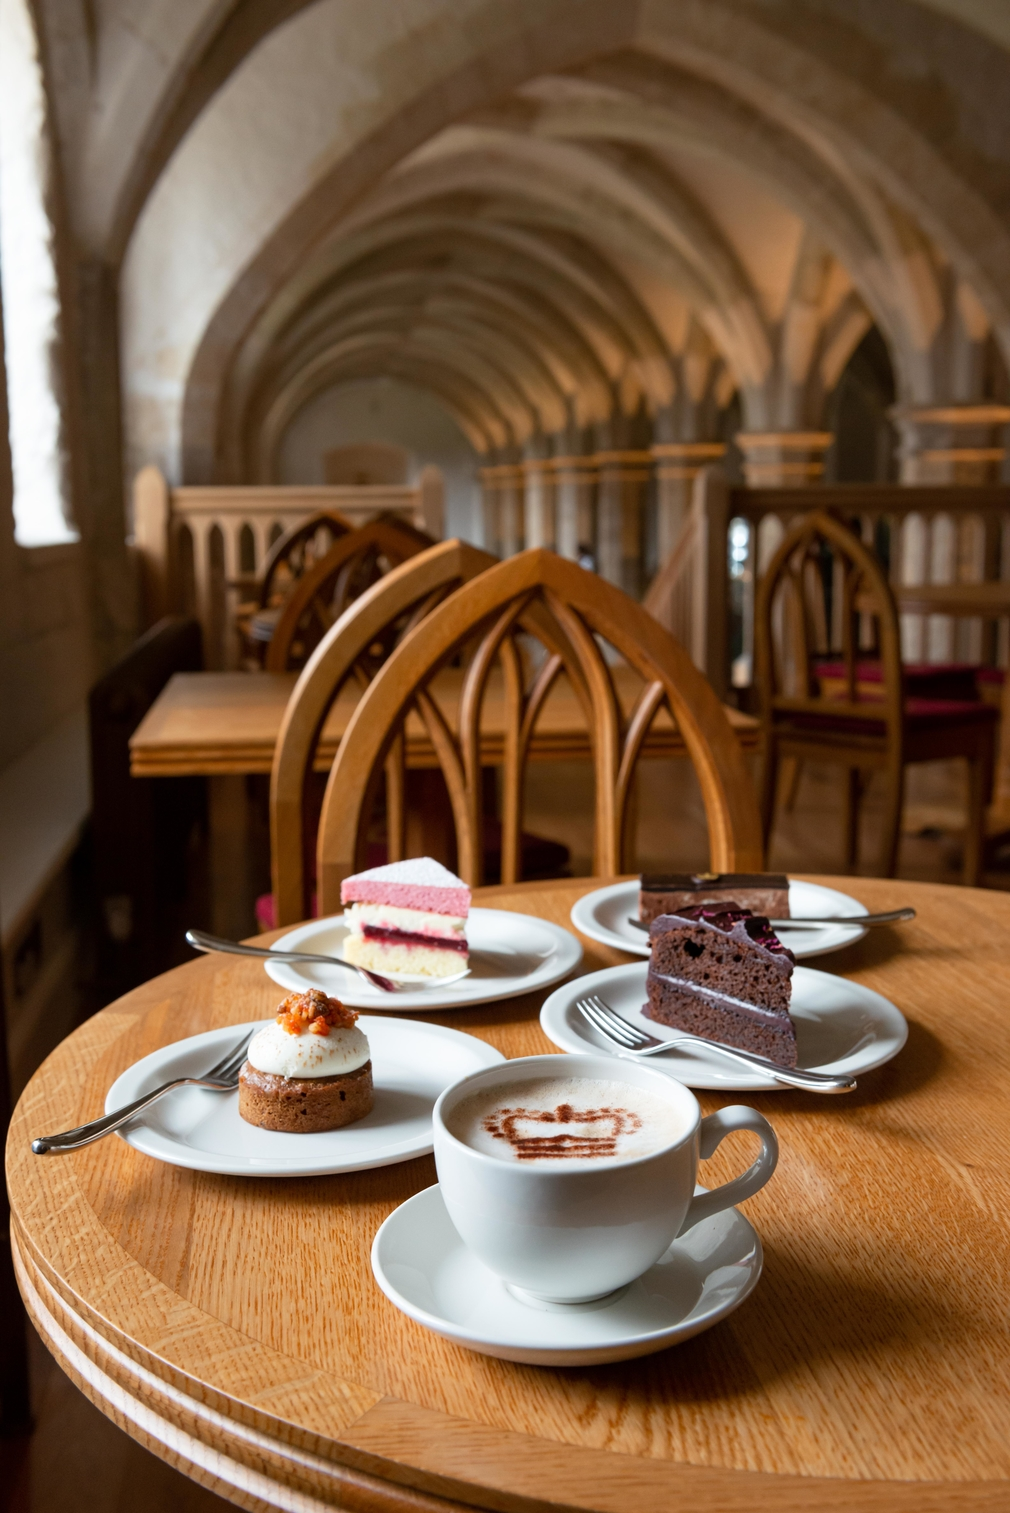 A selection of sweet treats at the Undercroft Café